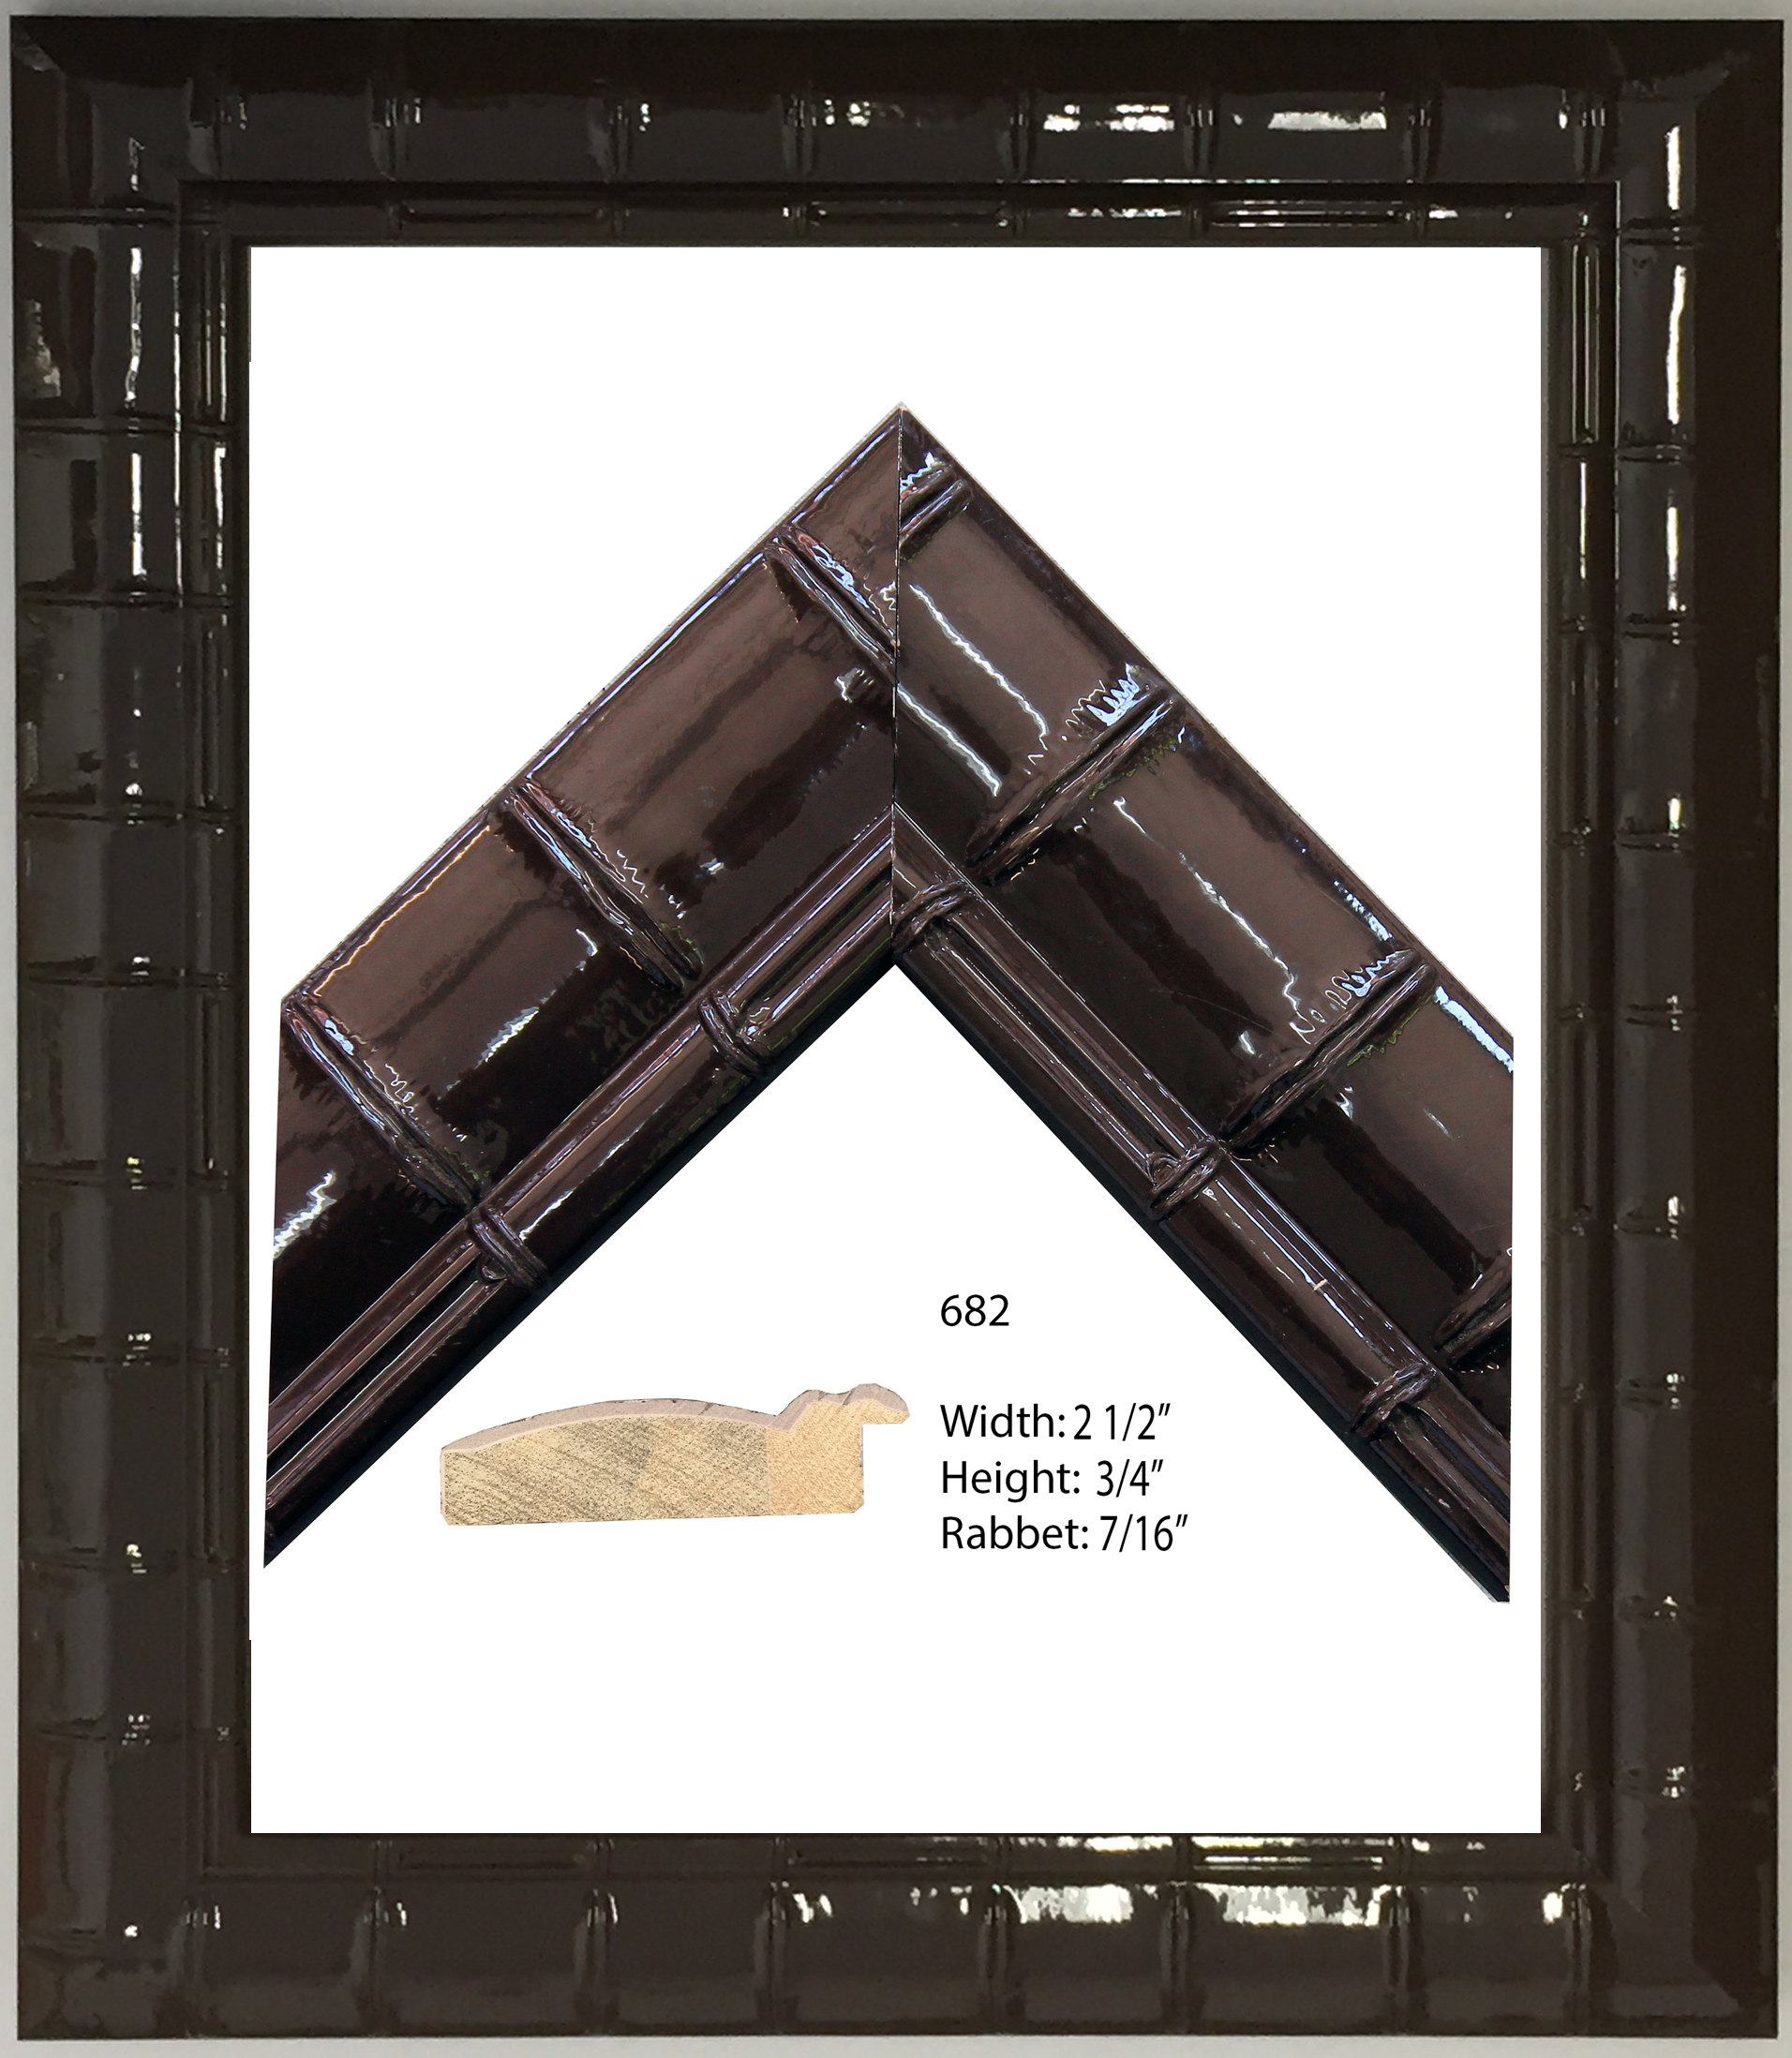 Brown Lacquer Frame 29 x 23 x 1